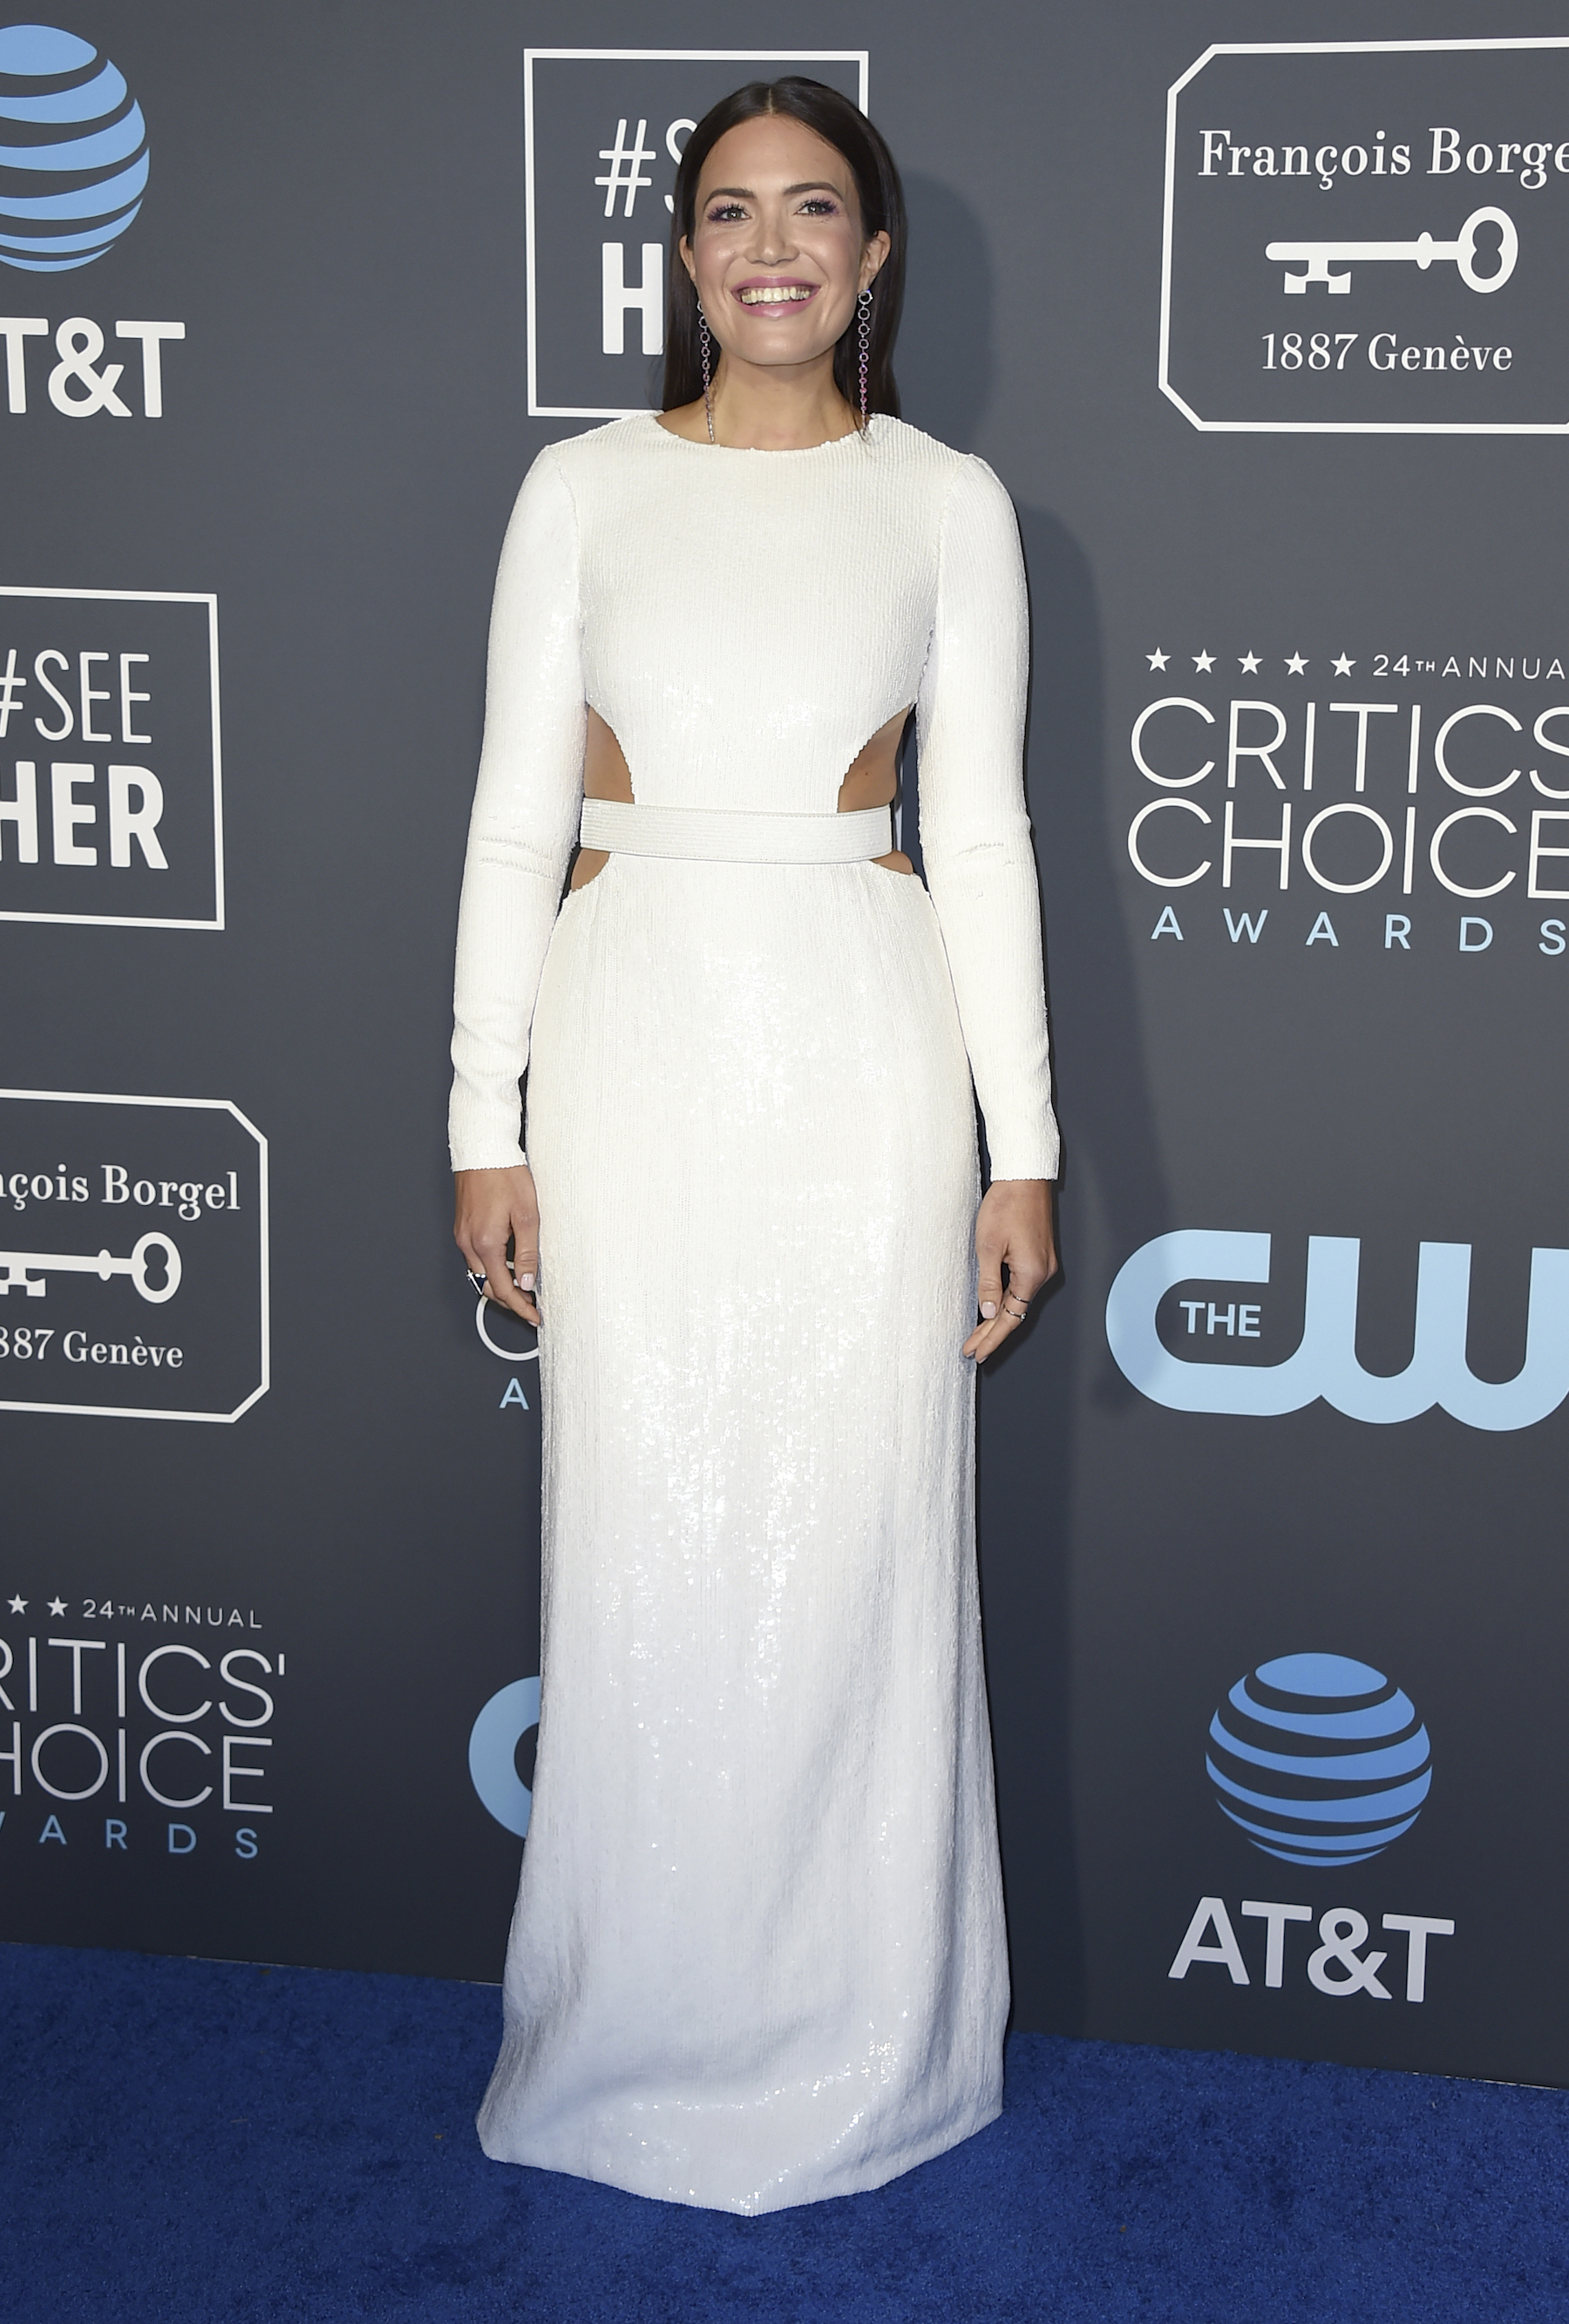 "<div class=""meta image-caption""><div class=""origin-logo origin-image ap""><span>AP</span></div><span class=""caption-text"">Mandy Moore arrives at the 24th annual Critics' Choice Awards on Sunday, Jan. 13, 2019, at the Barker Hangar in Santa Monica, Calif. (Jordan Strauss/Invision/AP)</span></div>"